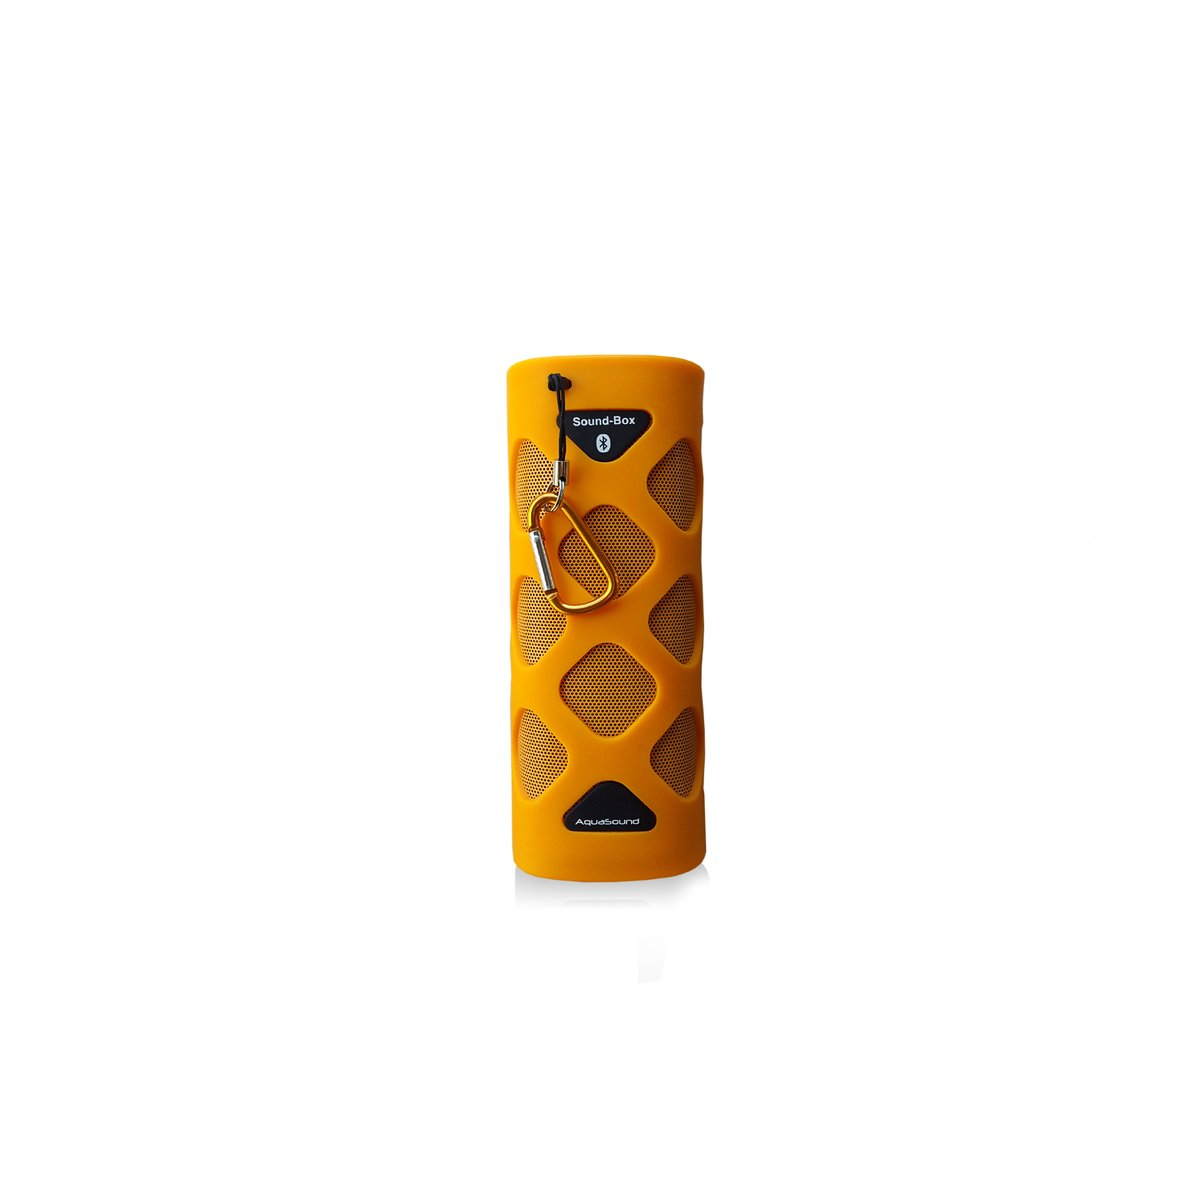 Draadloze Speakers Badkamer Aquasound Bluetooth Sound Box Oranje - Spksb1-o